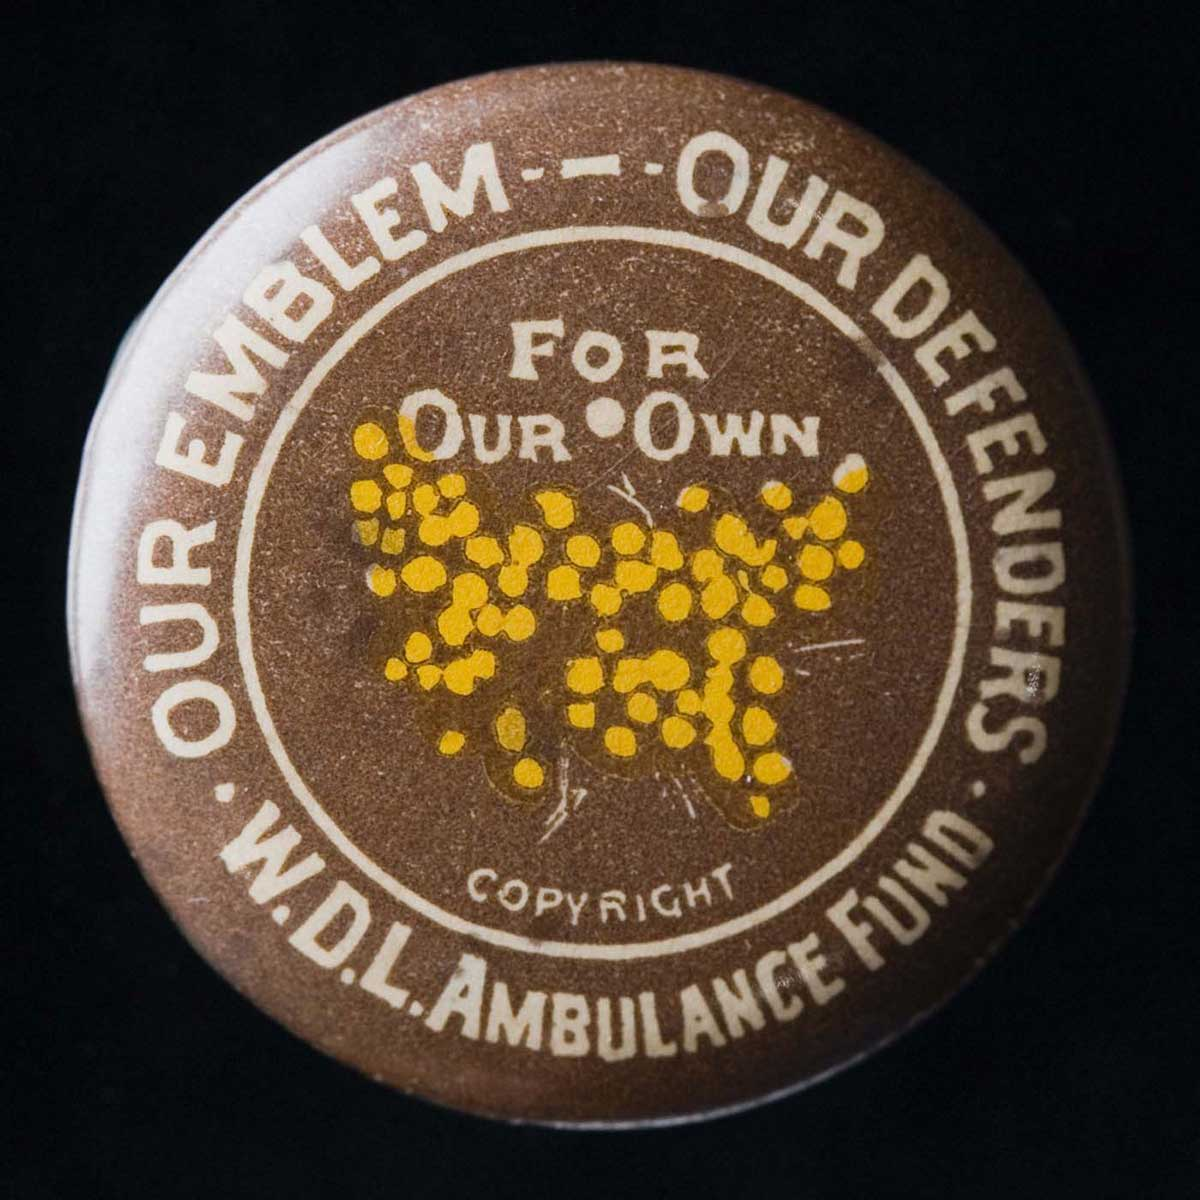 Brown-coloured circular badge with 'Our Emblem - Our Defenders, W.D.L Ambulance Fund' written around the border. Yellow wattle blossoms appear in the centre, along with the words 'For Our Own'. - click to view larger image